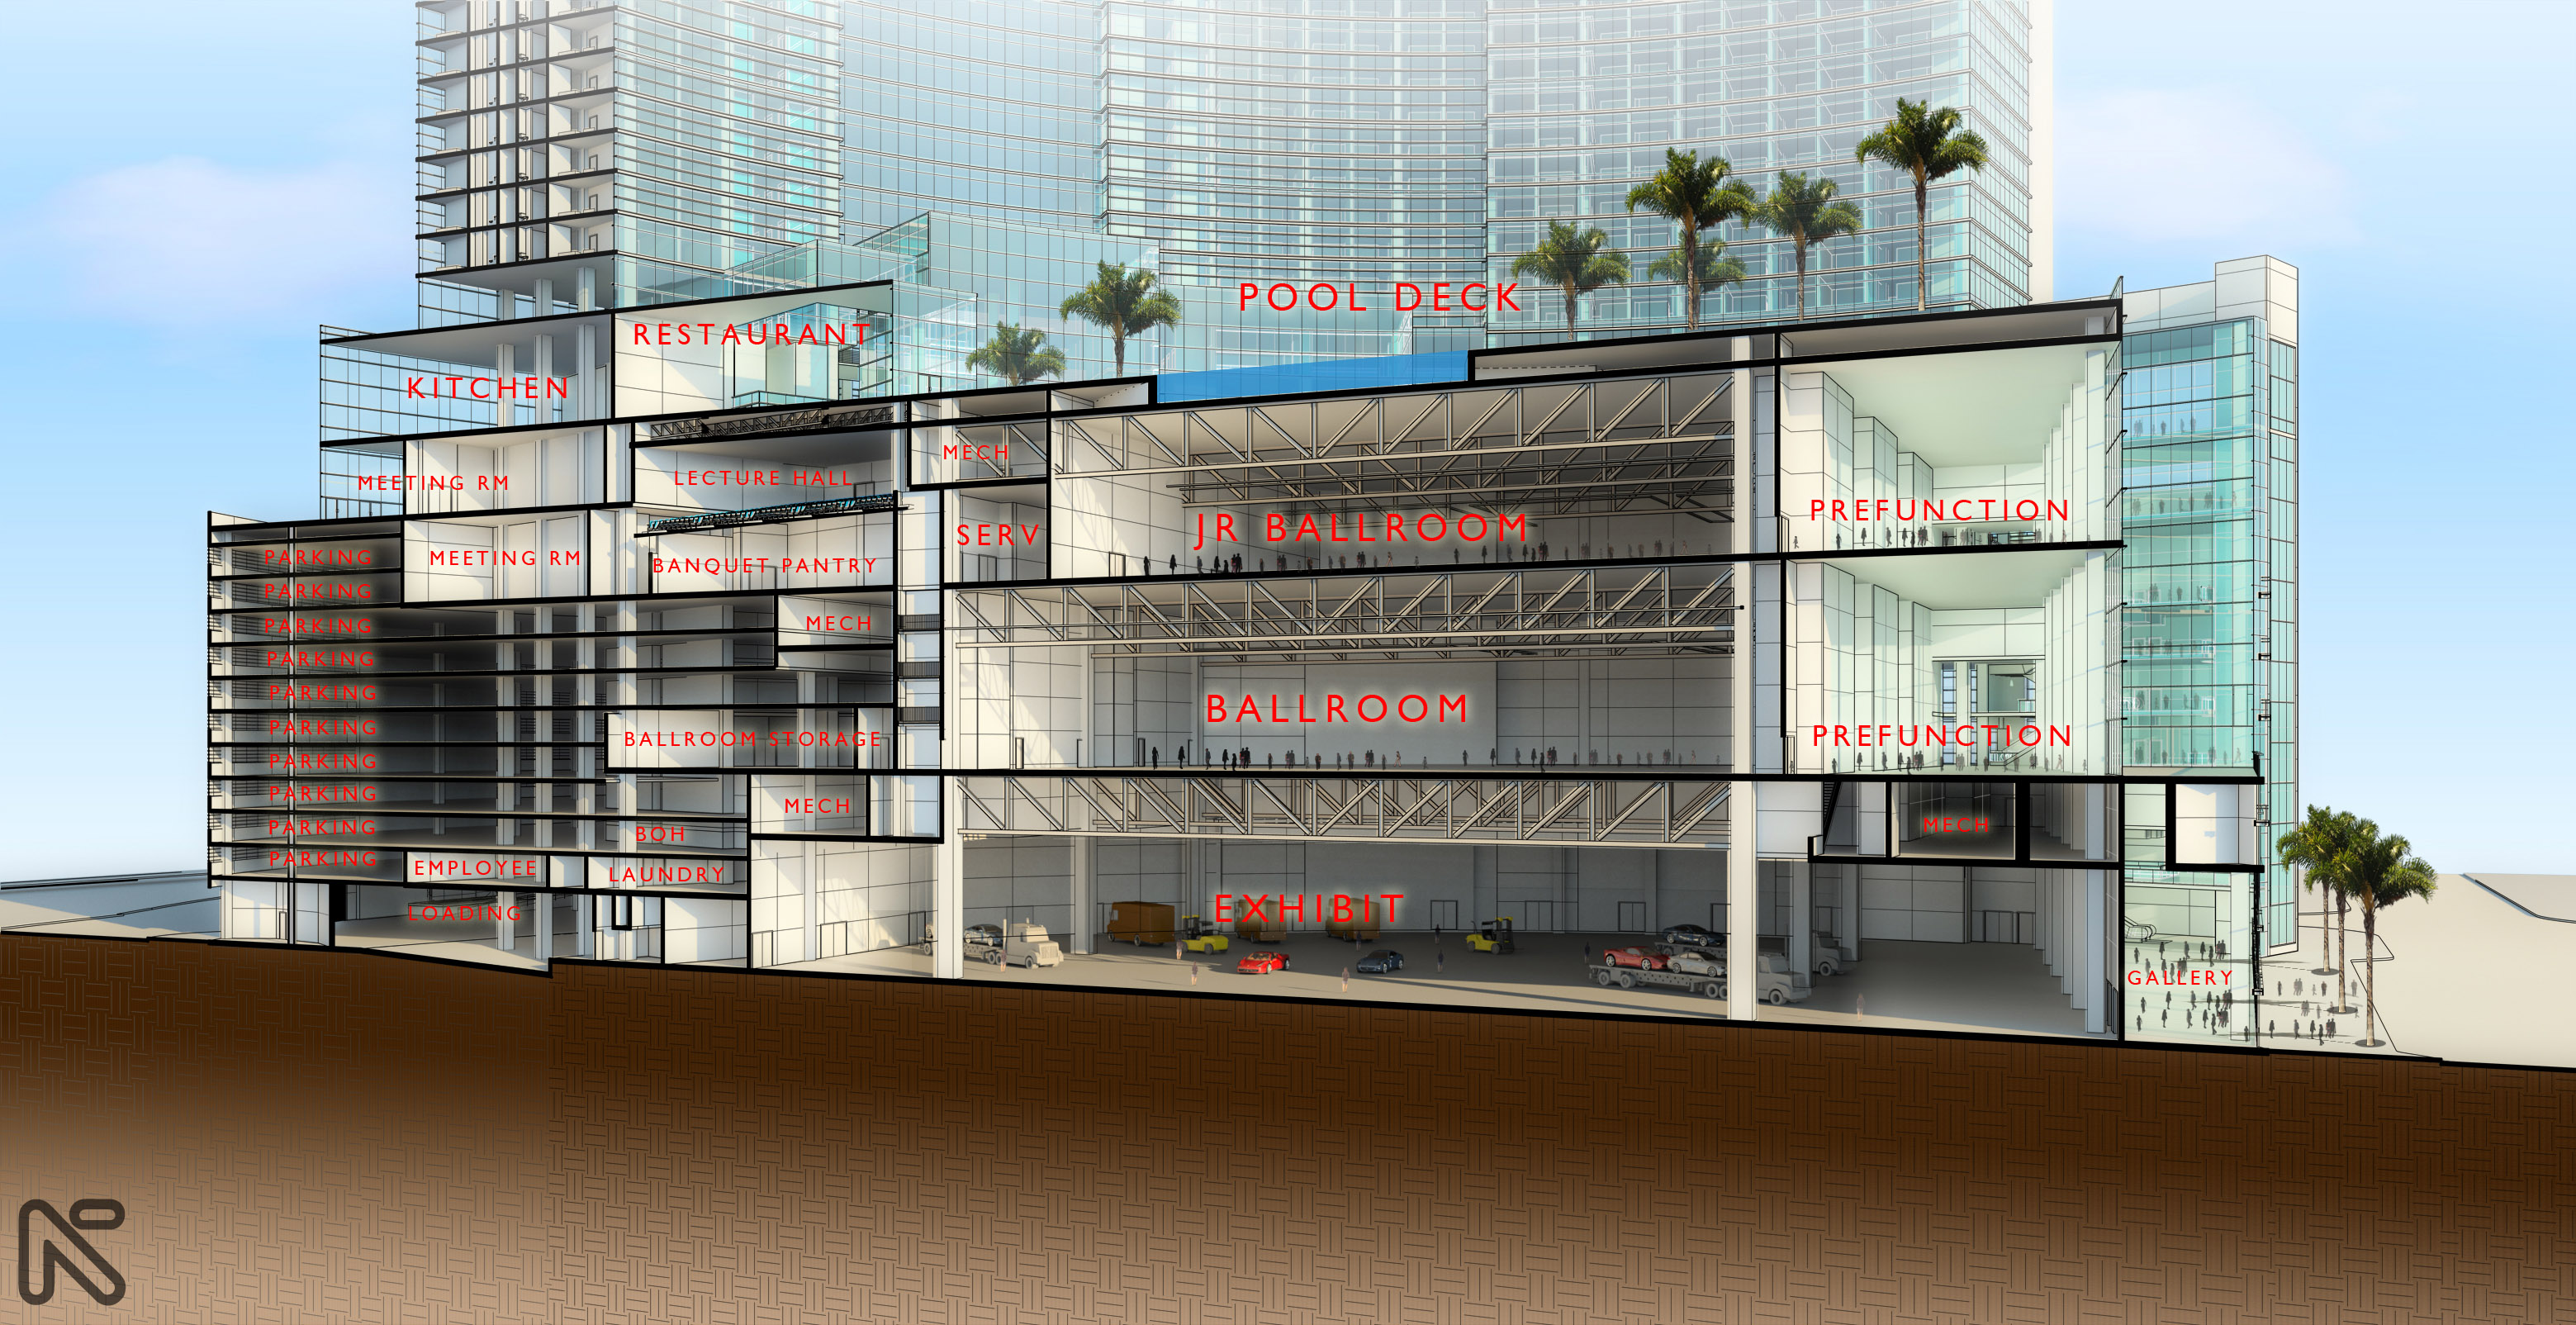 Cross section of the meeting space